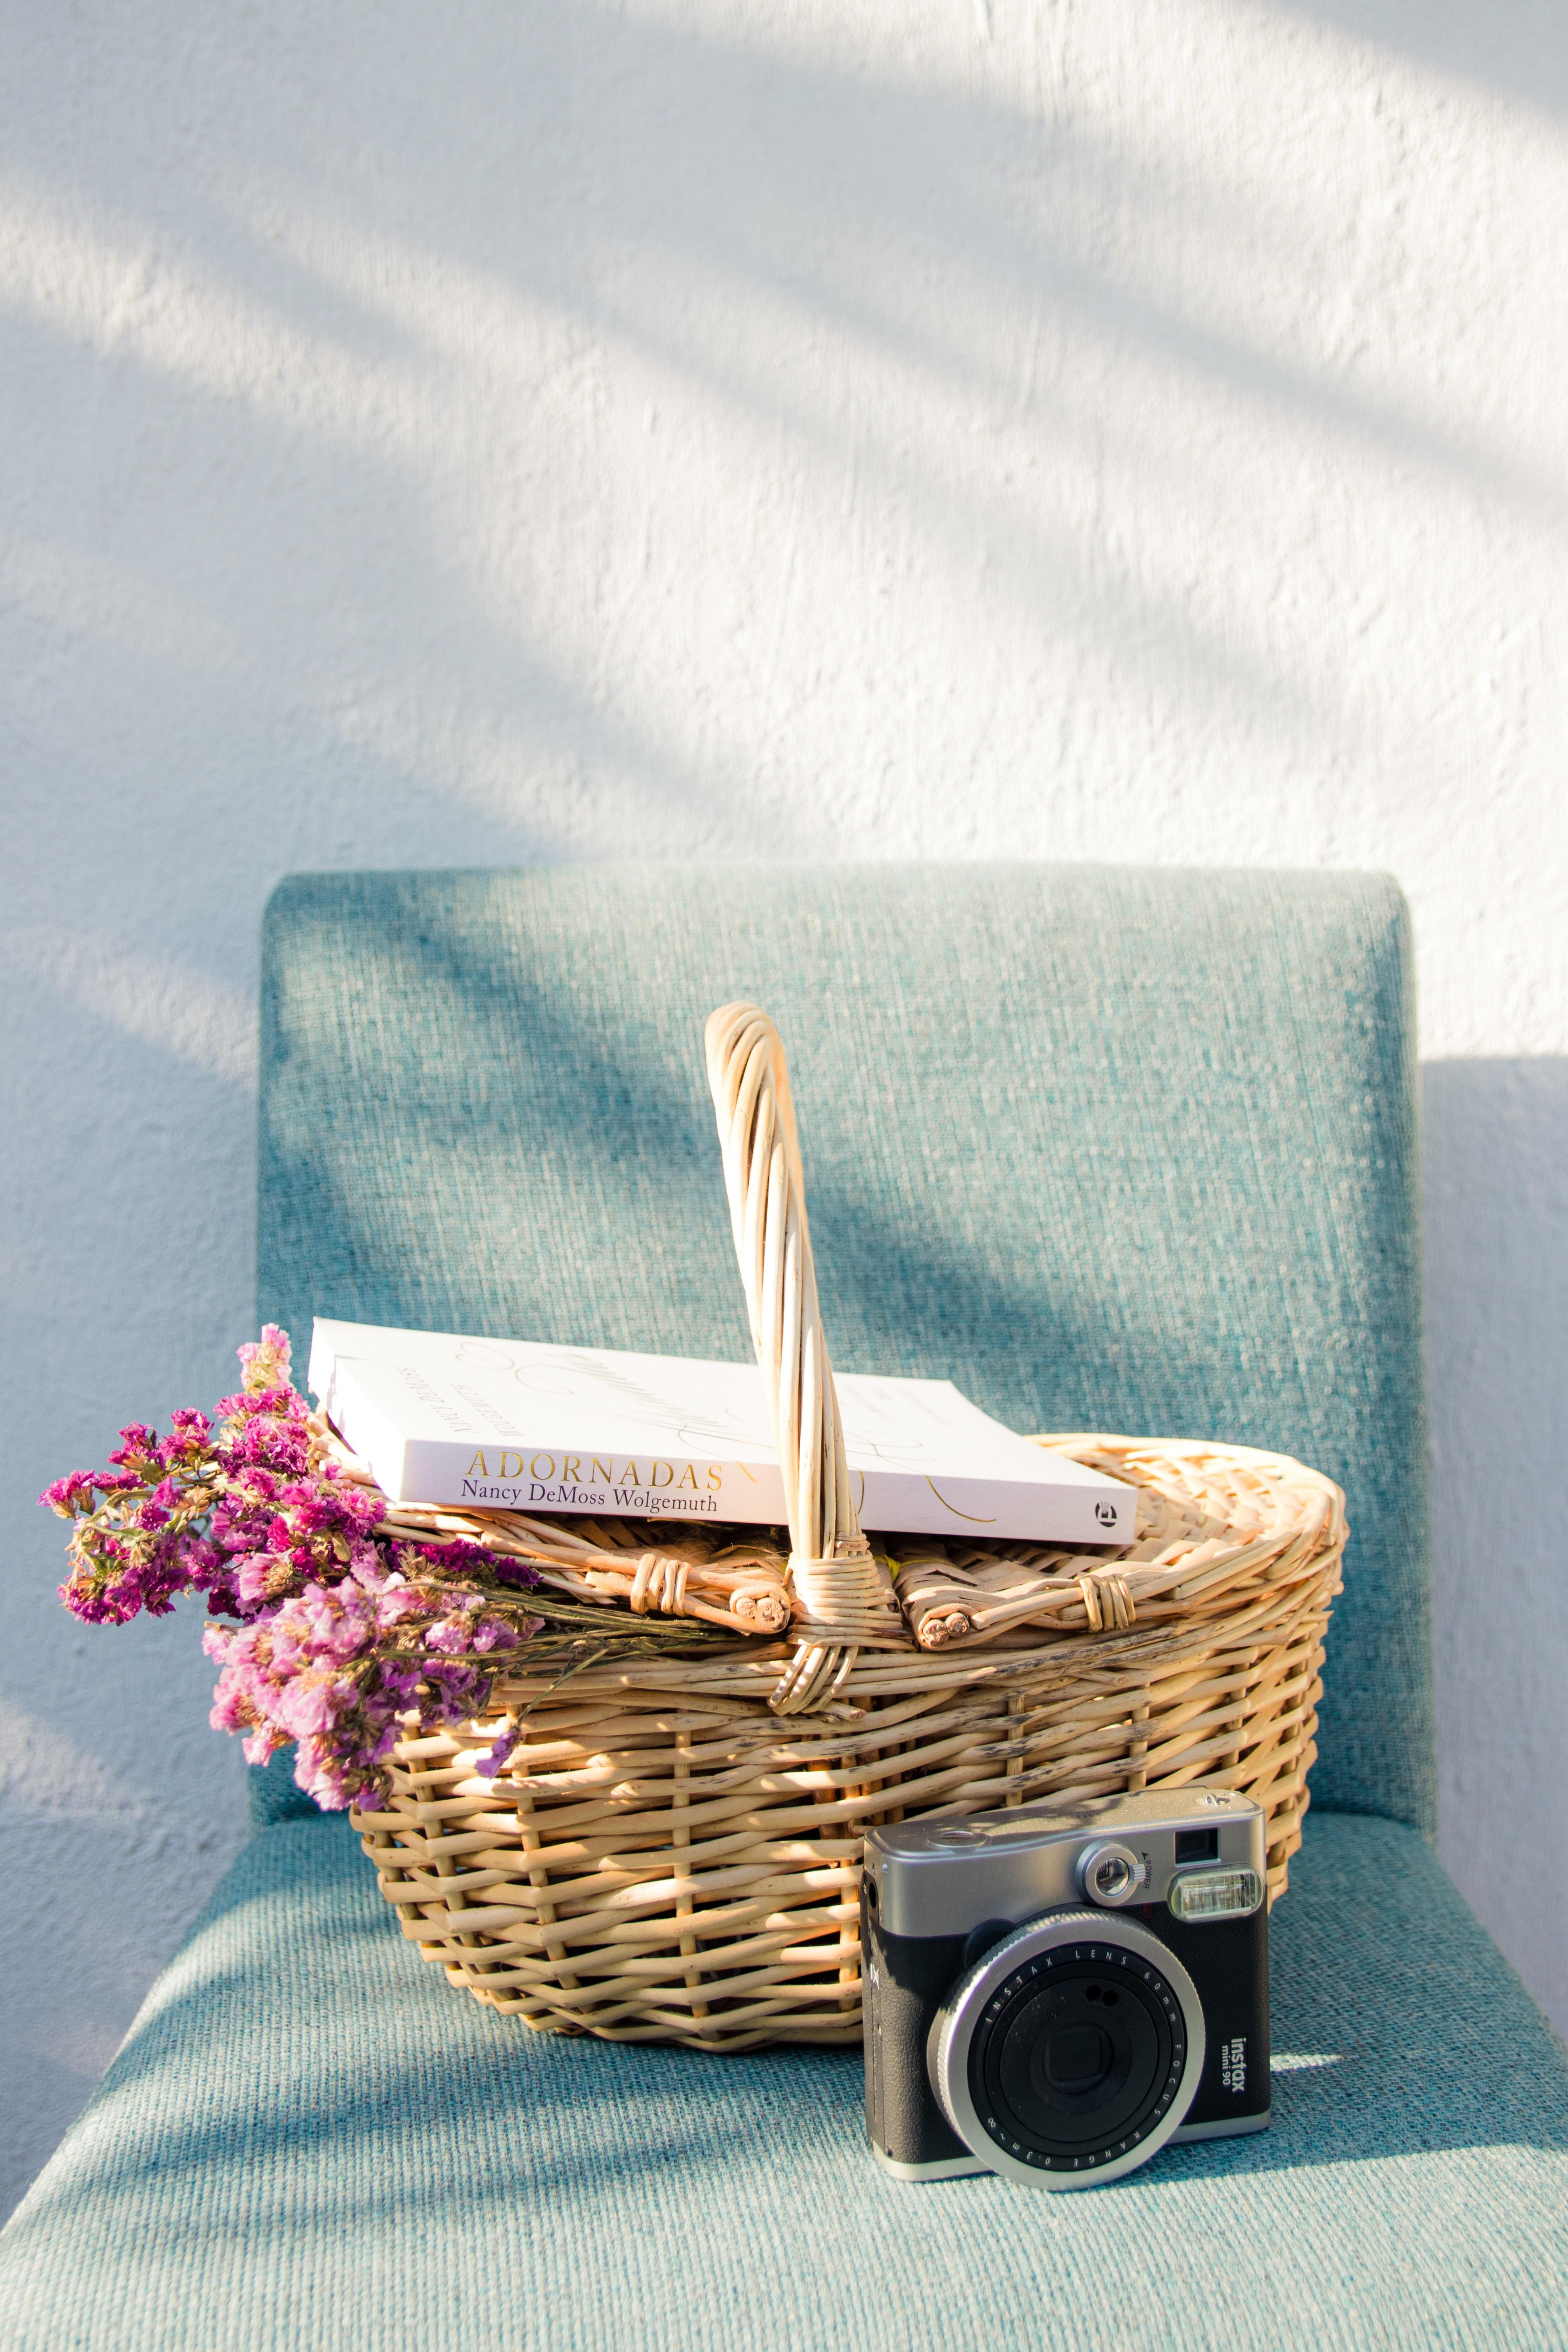 4 Items To Include In Your Little's Baskets